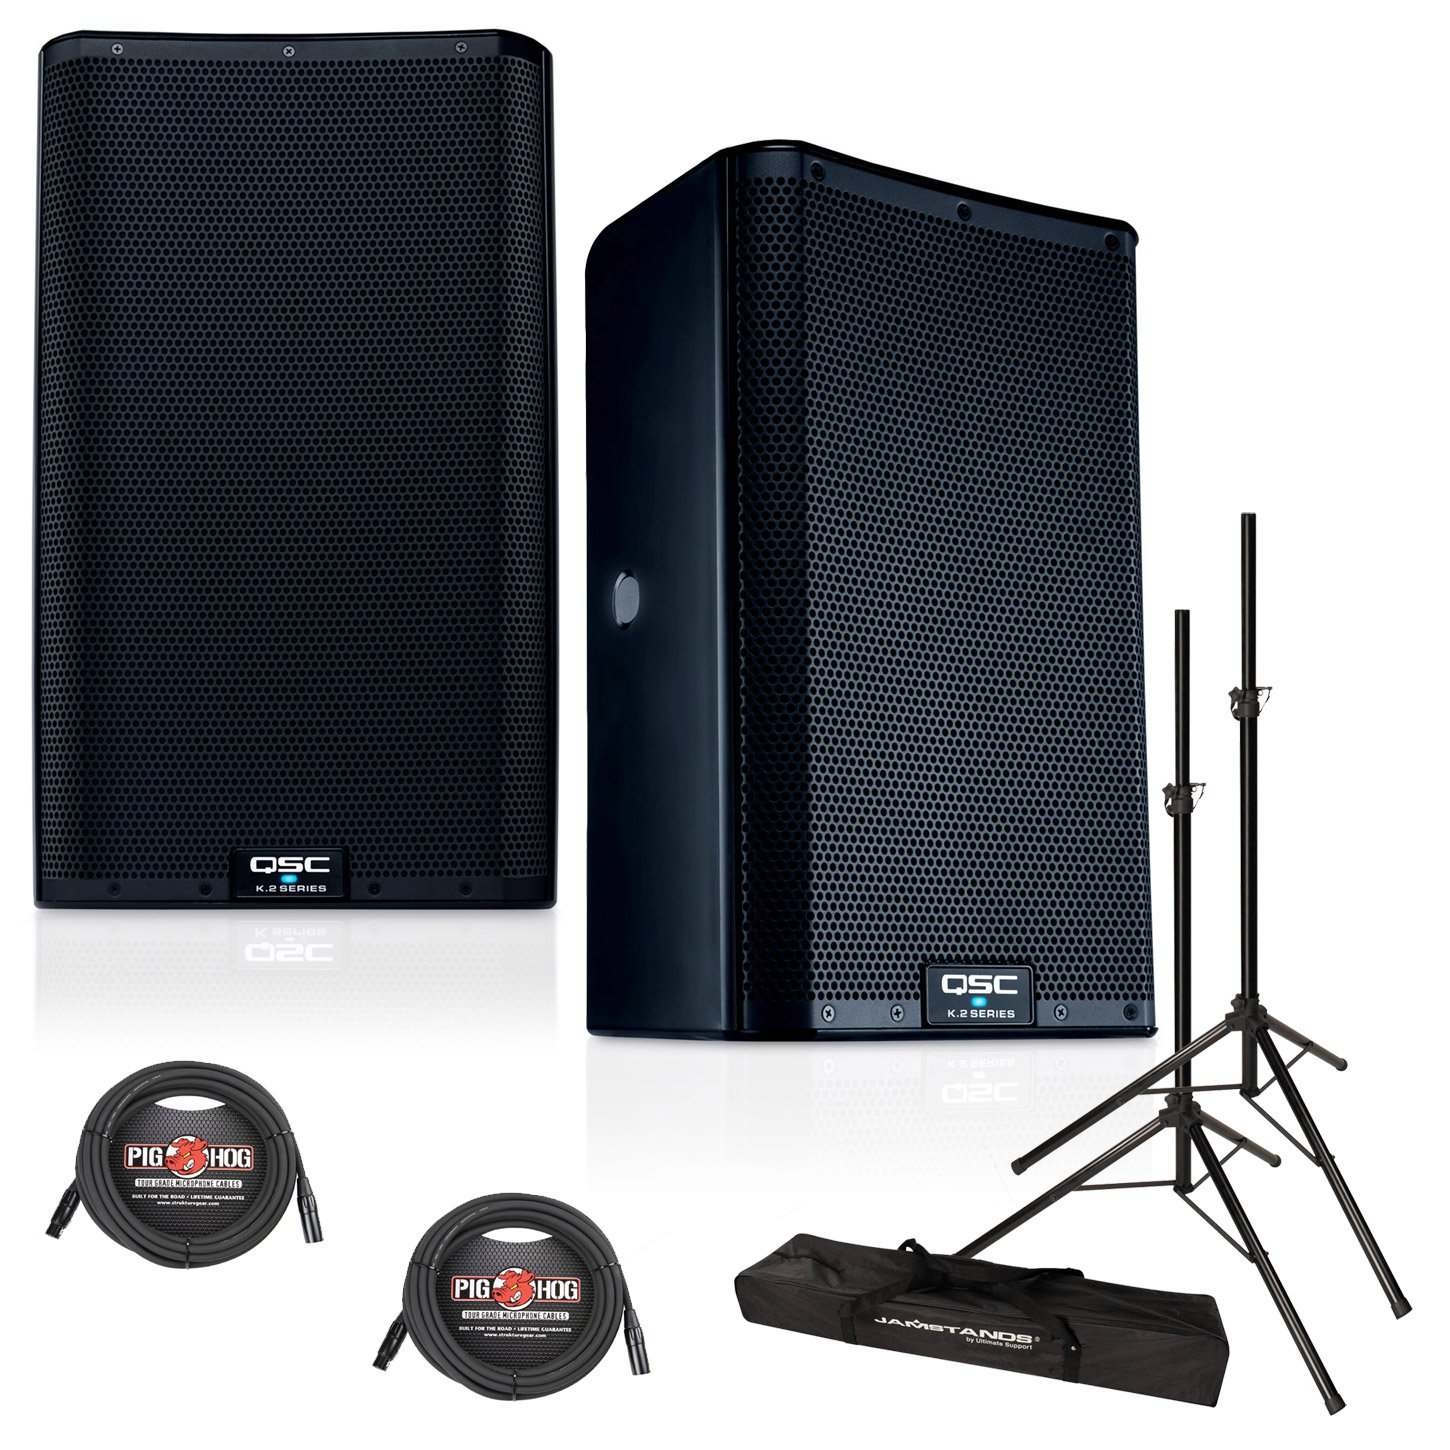 QSC K10.2 10-Inch 2000 Watt Powered PA Speakers (PAIR) w/XLR Cables & Speaker Stands by QSC